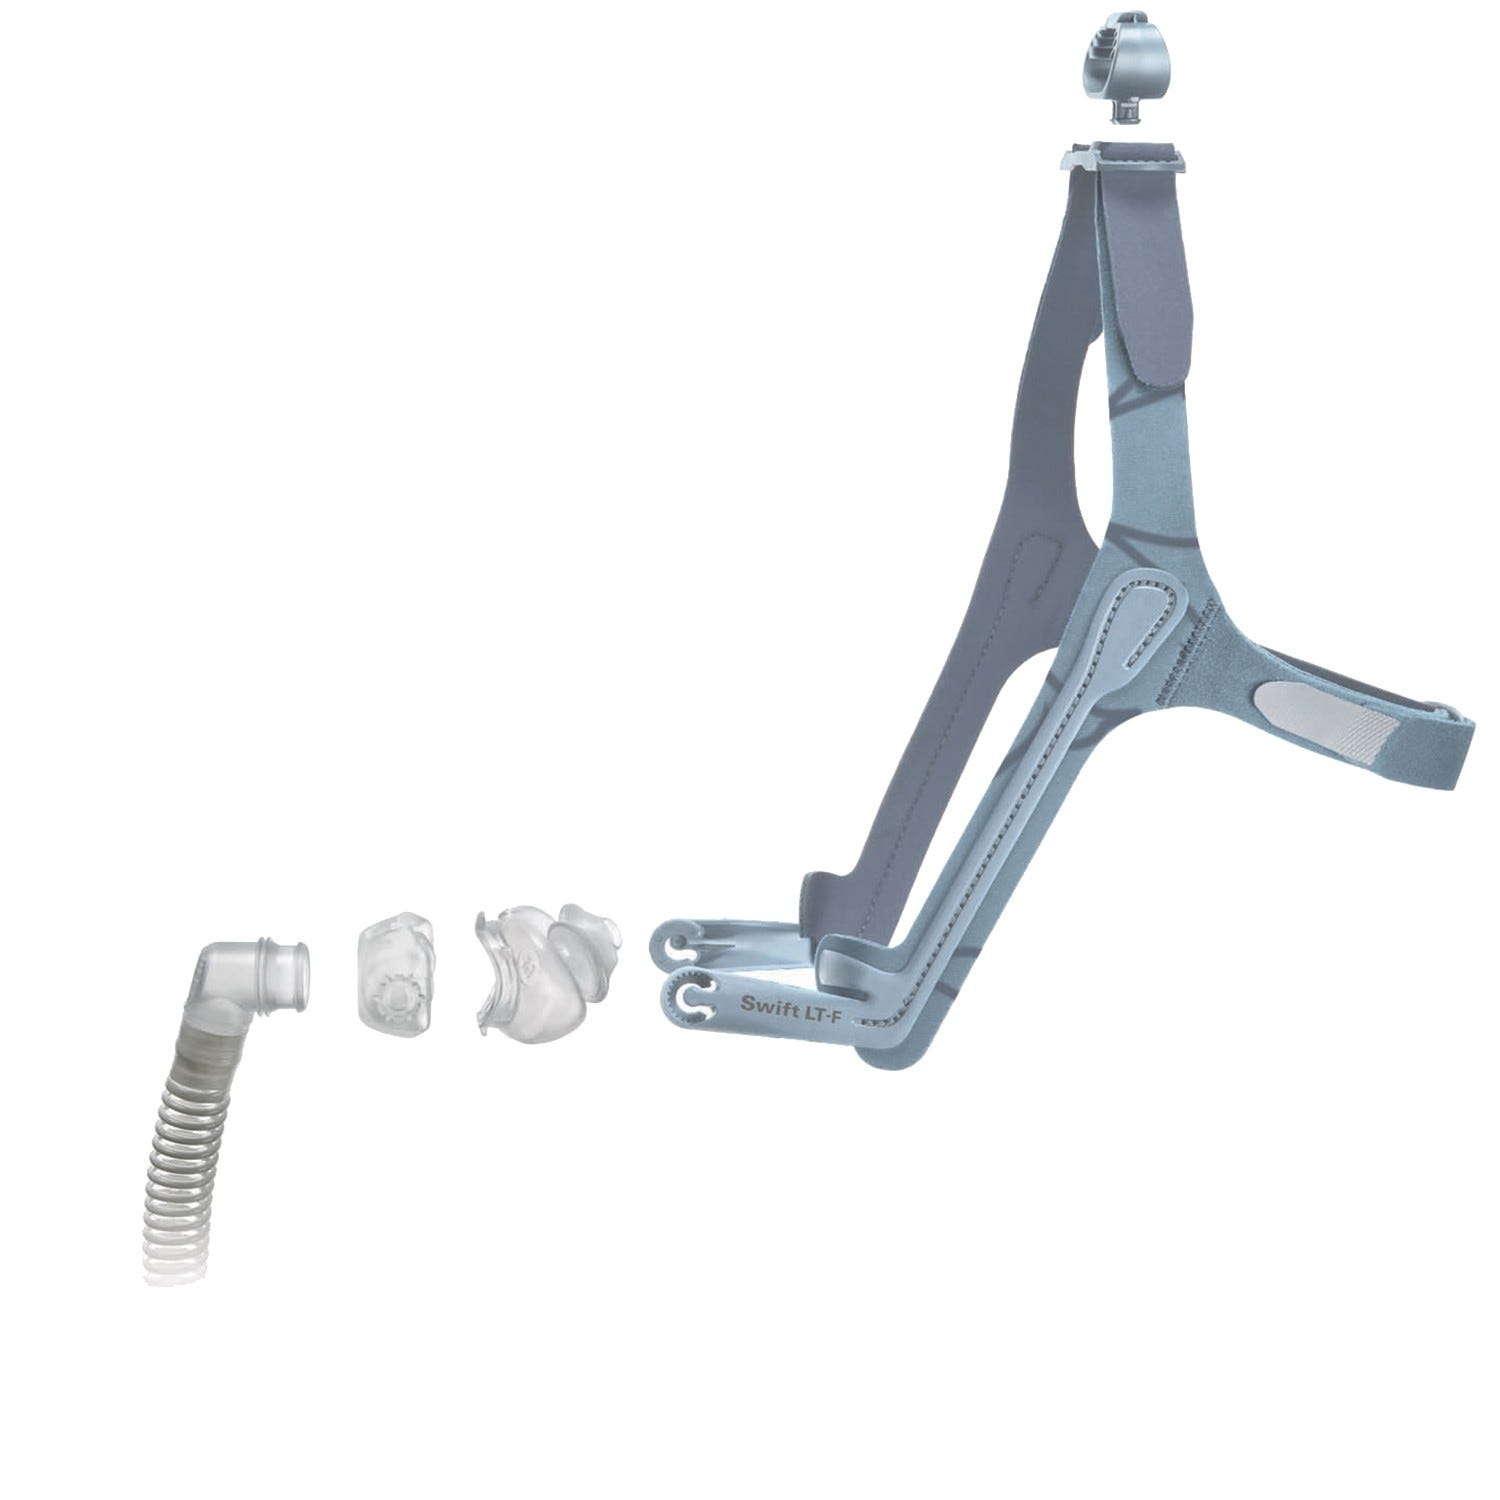 ResMed Swift LT for Her Nasal Pillows System